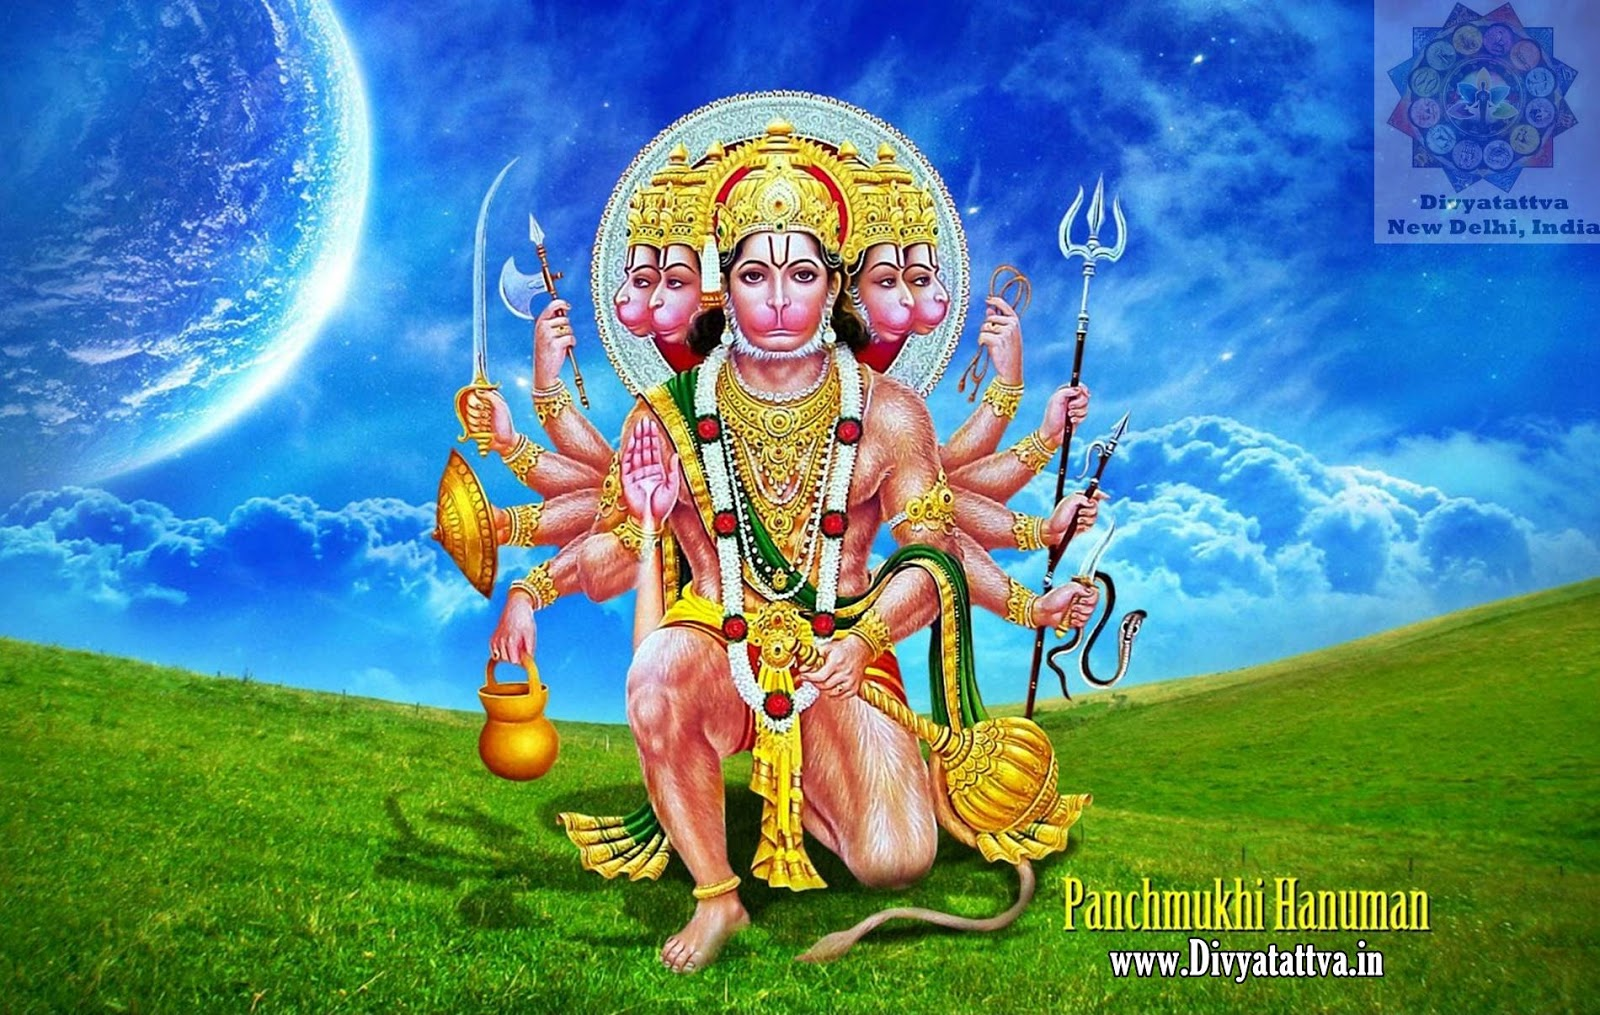 Panchmukhi Hanuman Wallpapers Free 4k Ultra HD Lord Spiritual And Backgrounds